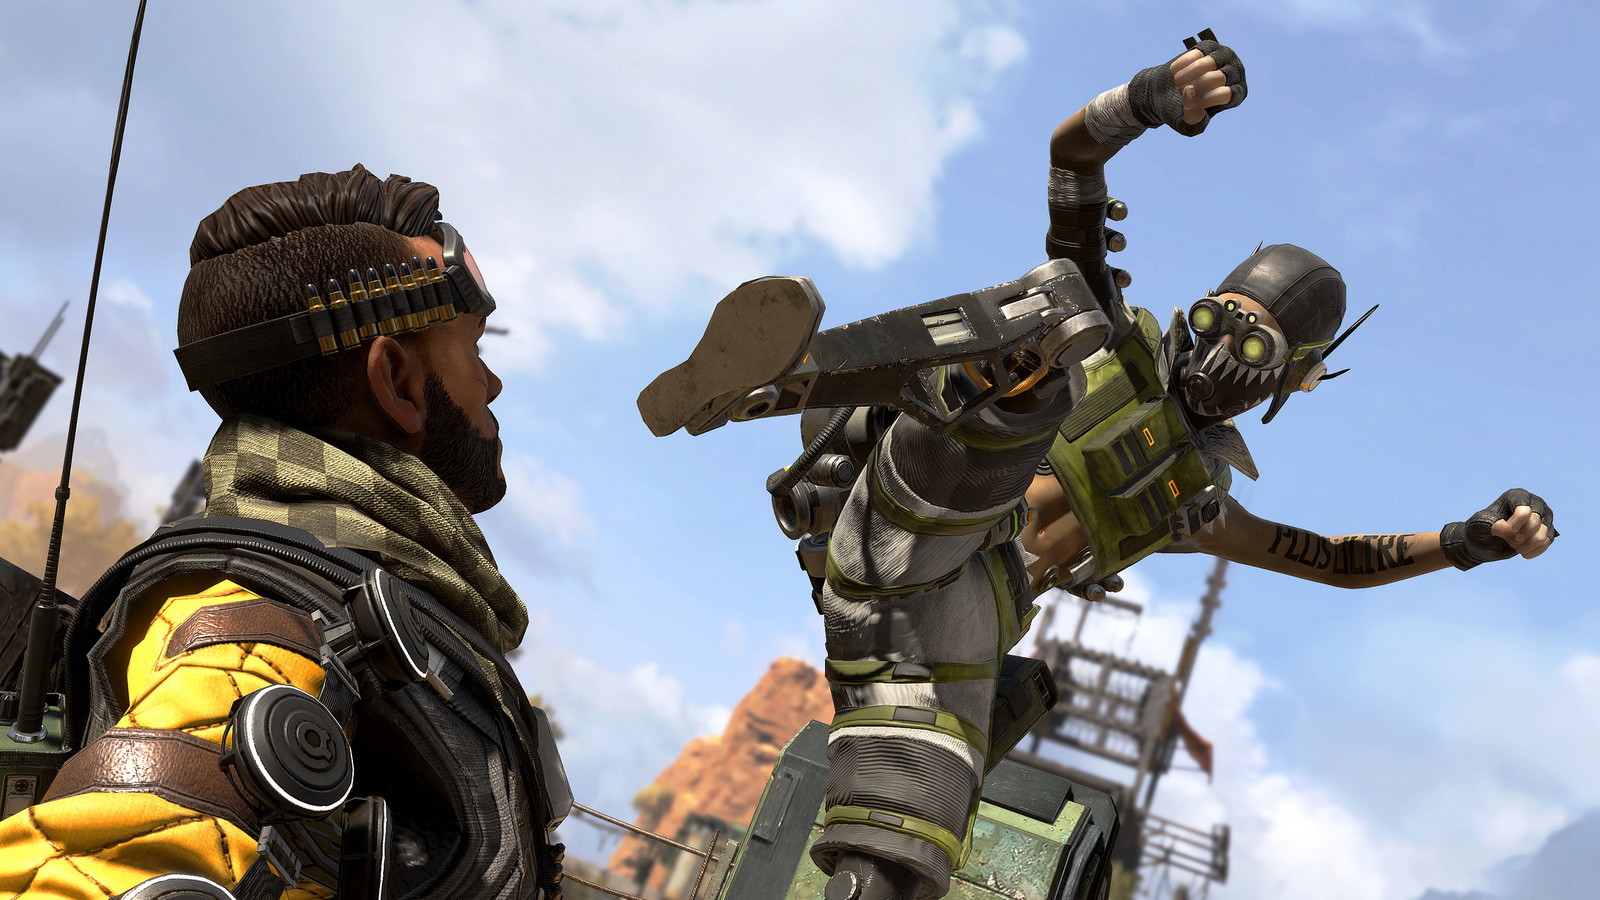 Apex Legends launches into its first season tomorrow with mad lad Octane